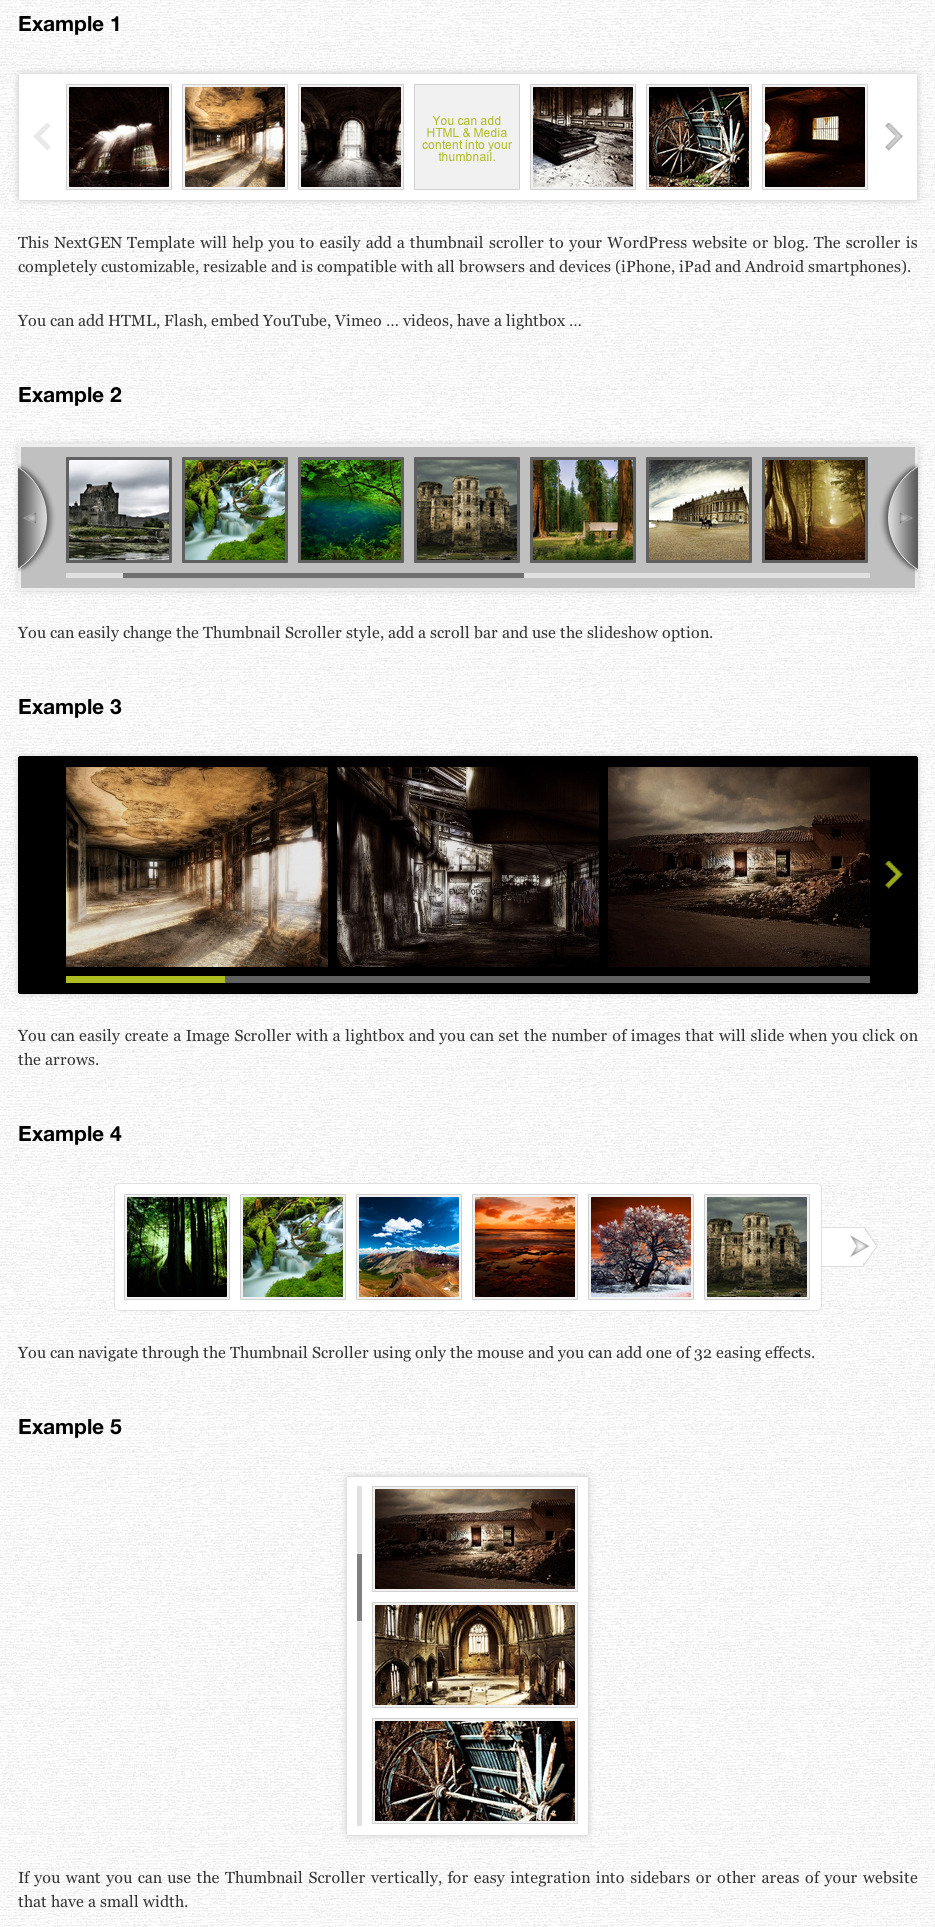 Thumbnail Scroller (WP NextGEN Gallery Template) - Scroller Examples